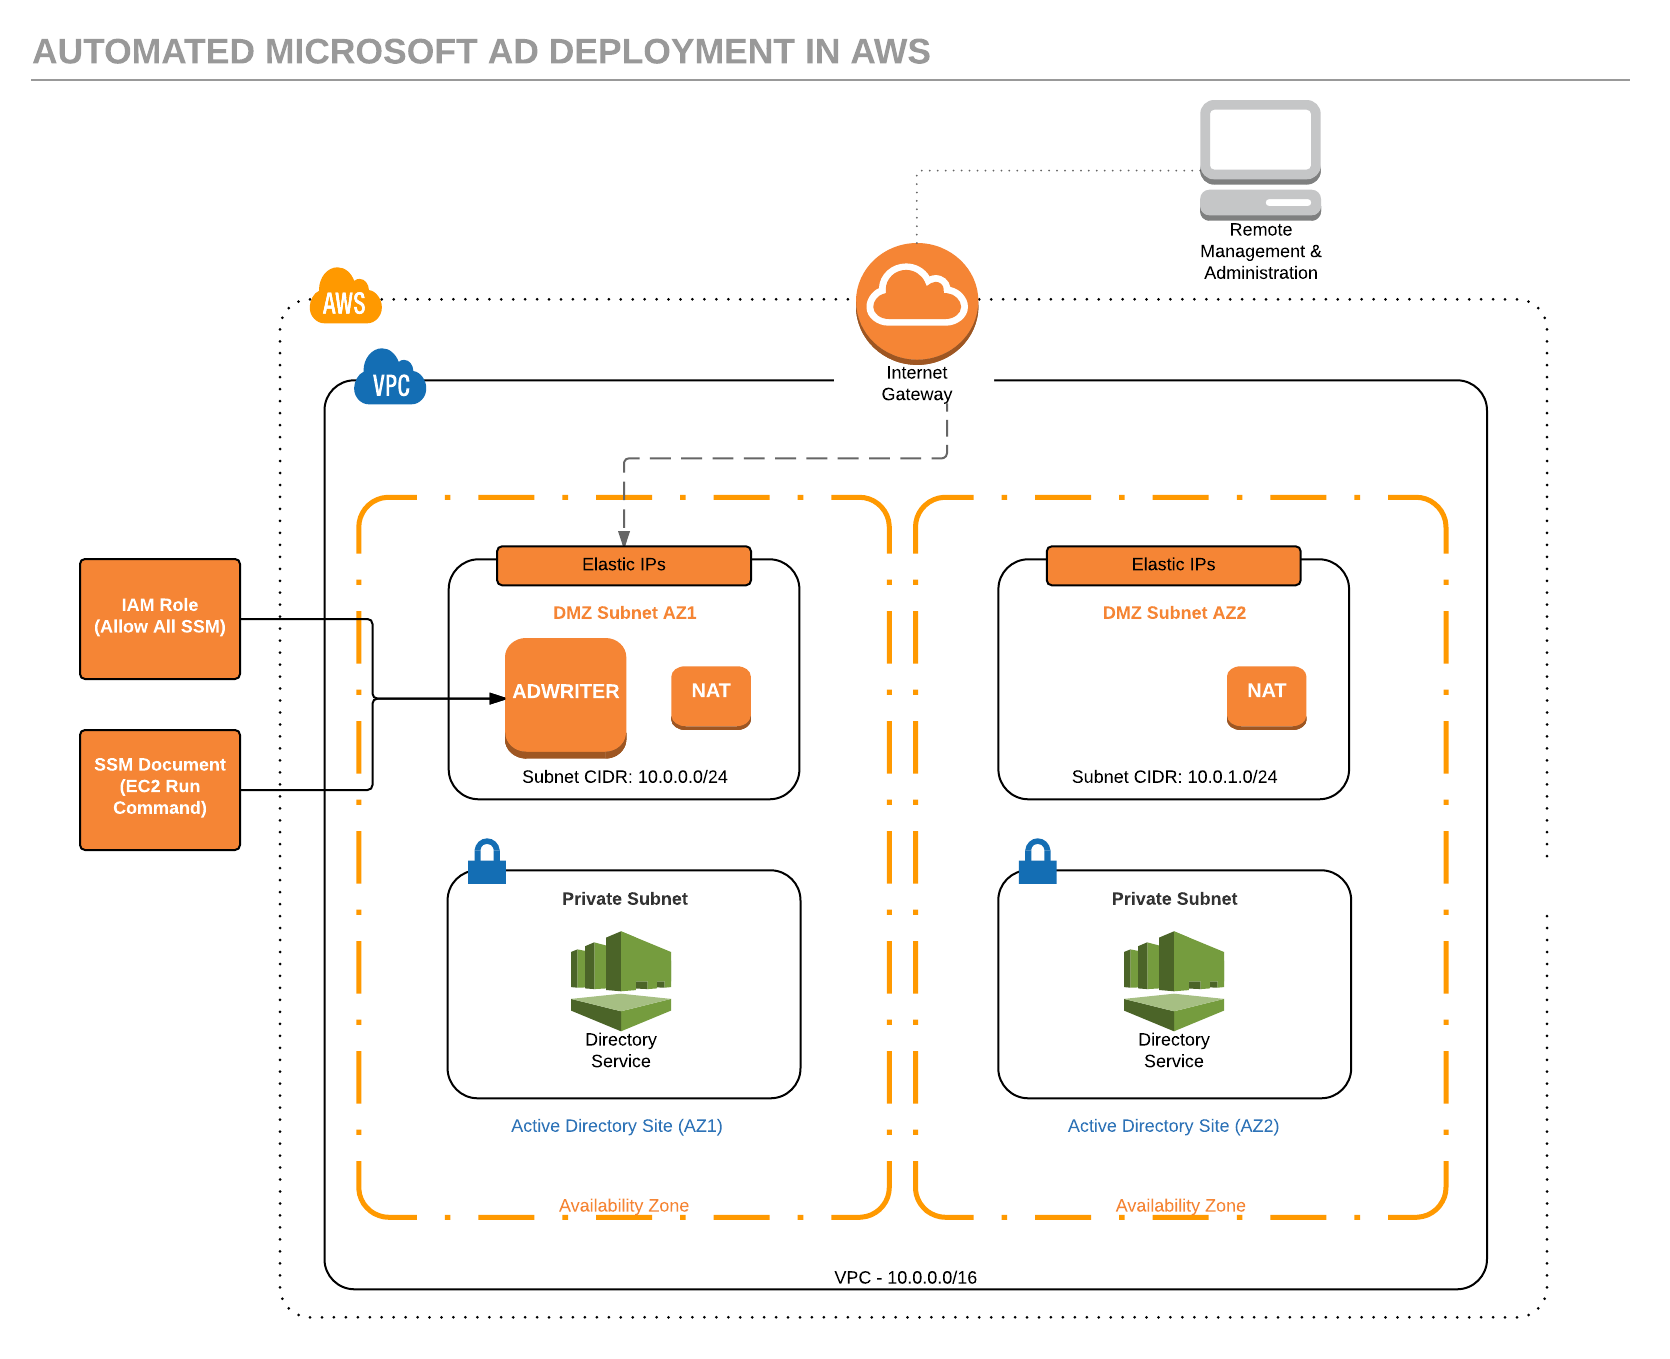 Deploying Windows AD in AWS using AWS Directory Service and